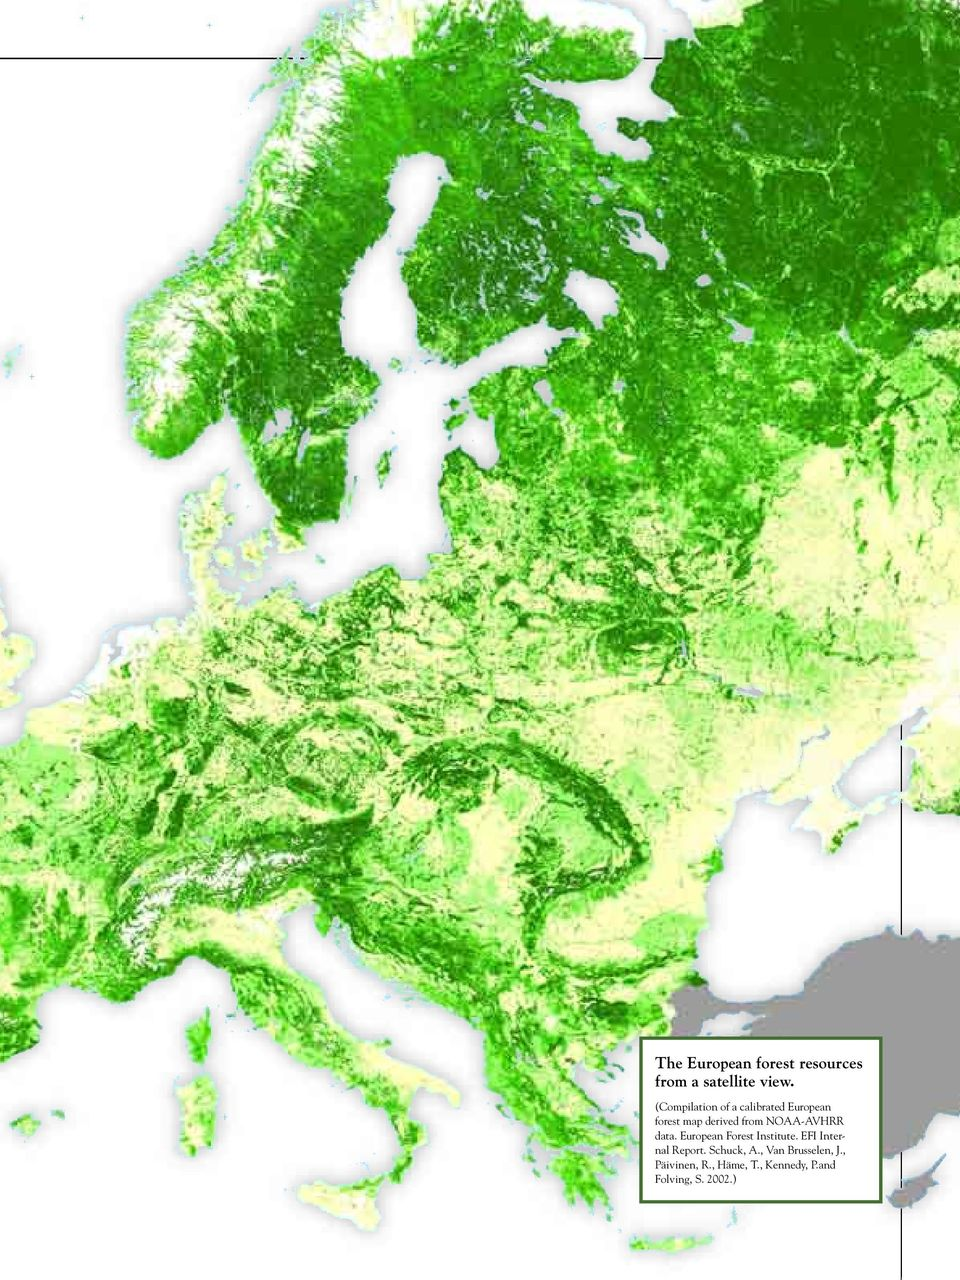 NOAA-AVHRR data. European Forest Institute. EFI Internal Report.